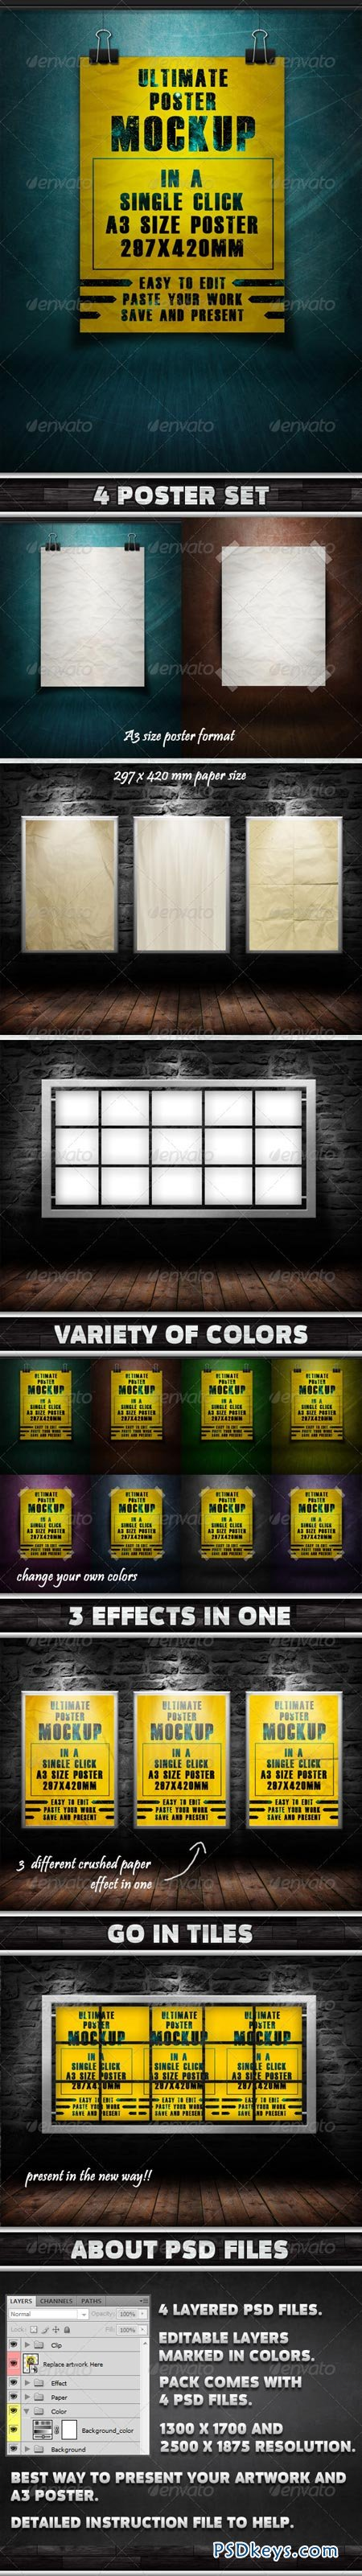 Ultimate Poster Mockup Pack -1 1332986